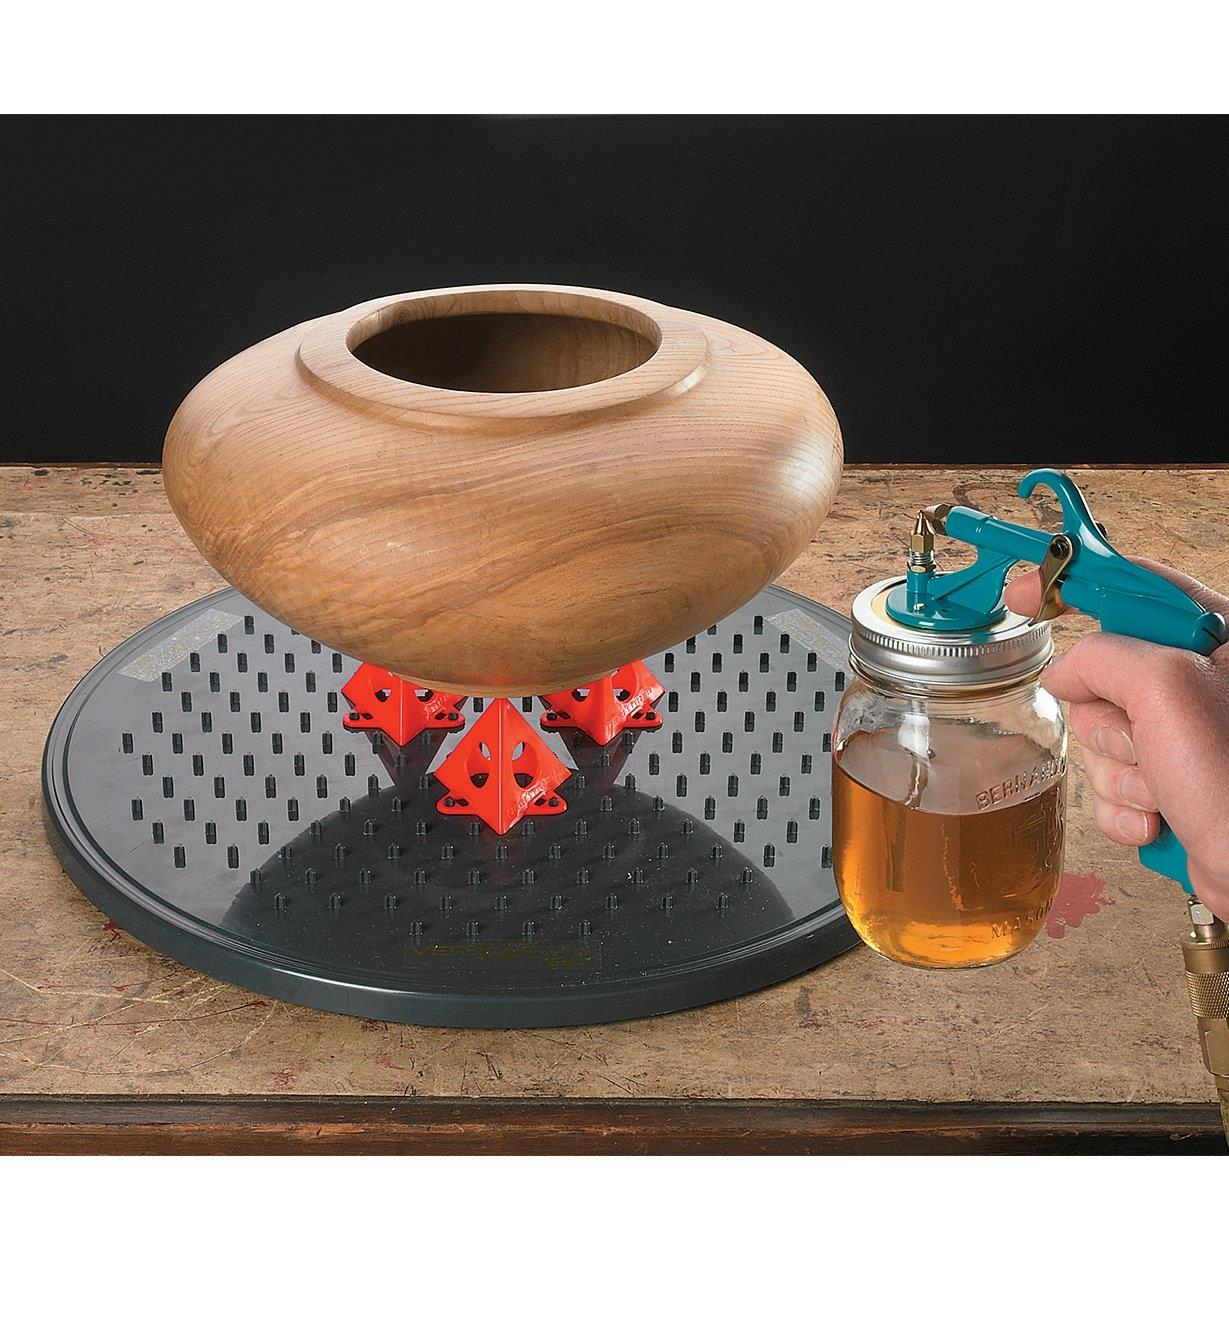 Spraying a wooden vase that is propped on a Versa-Spin Finishing Turntable with Painter's Pyramid supports